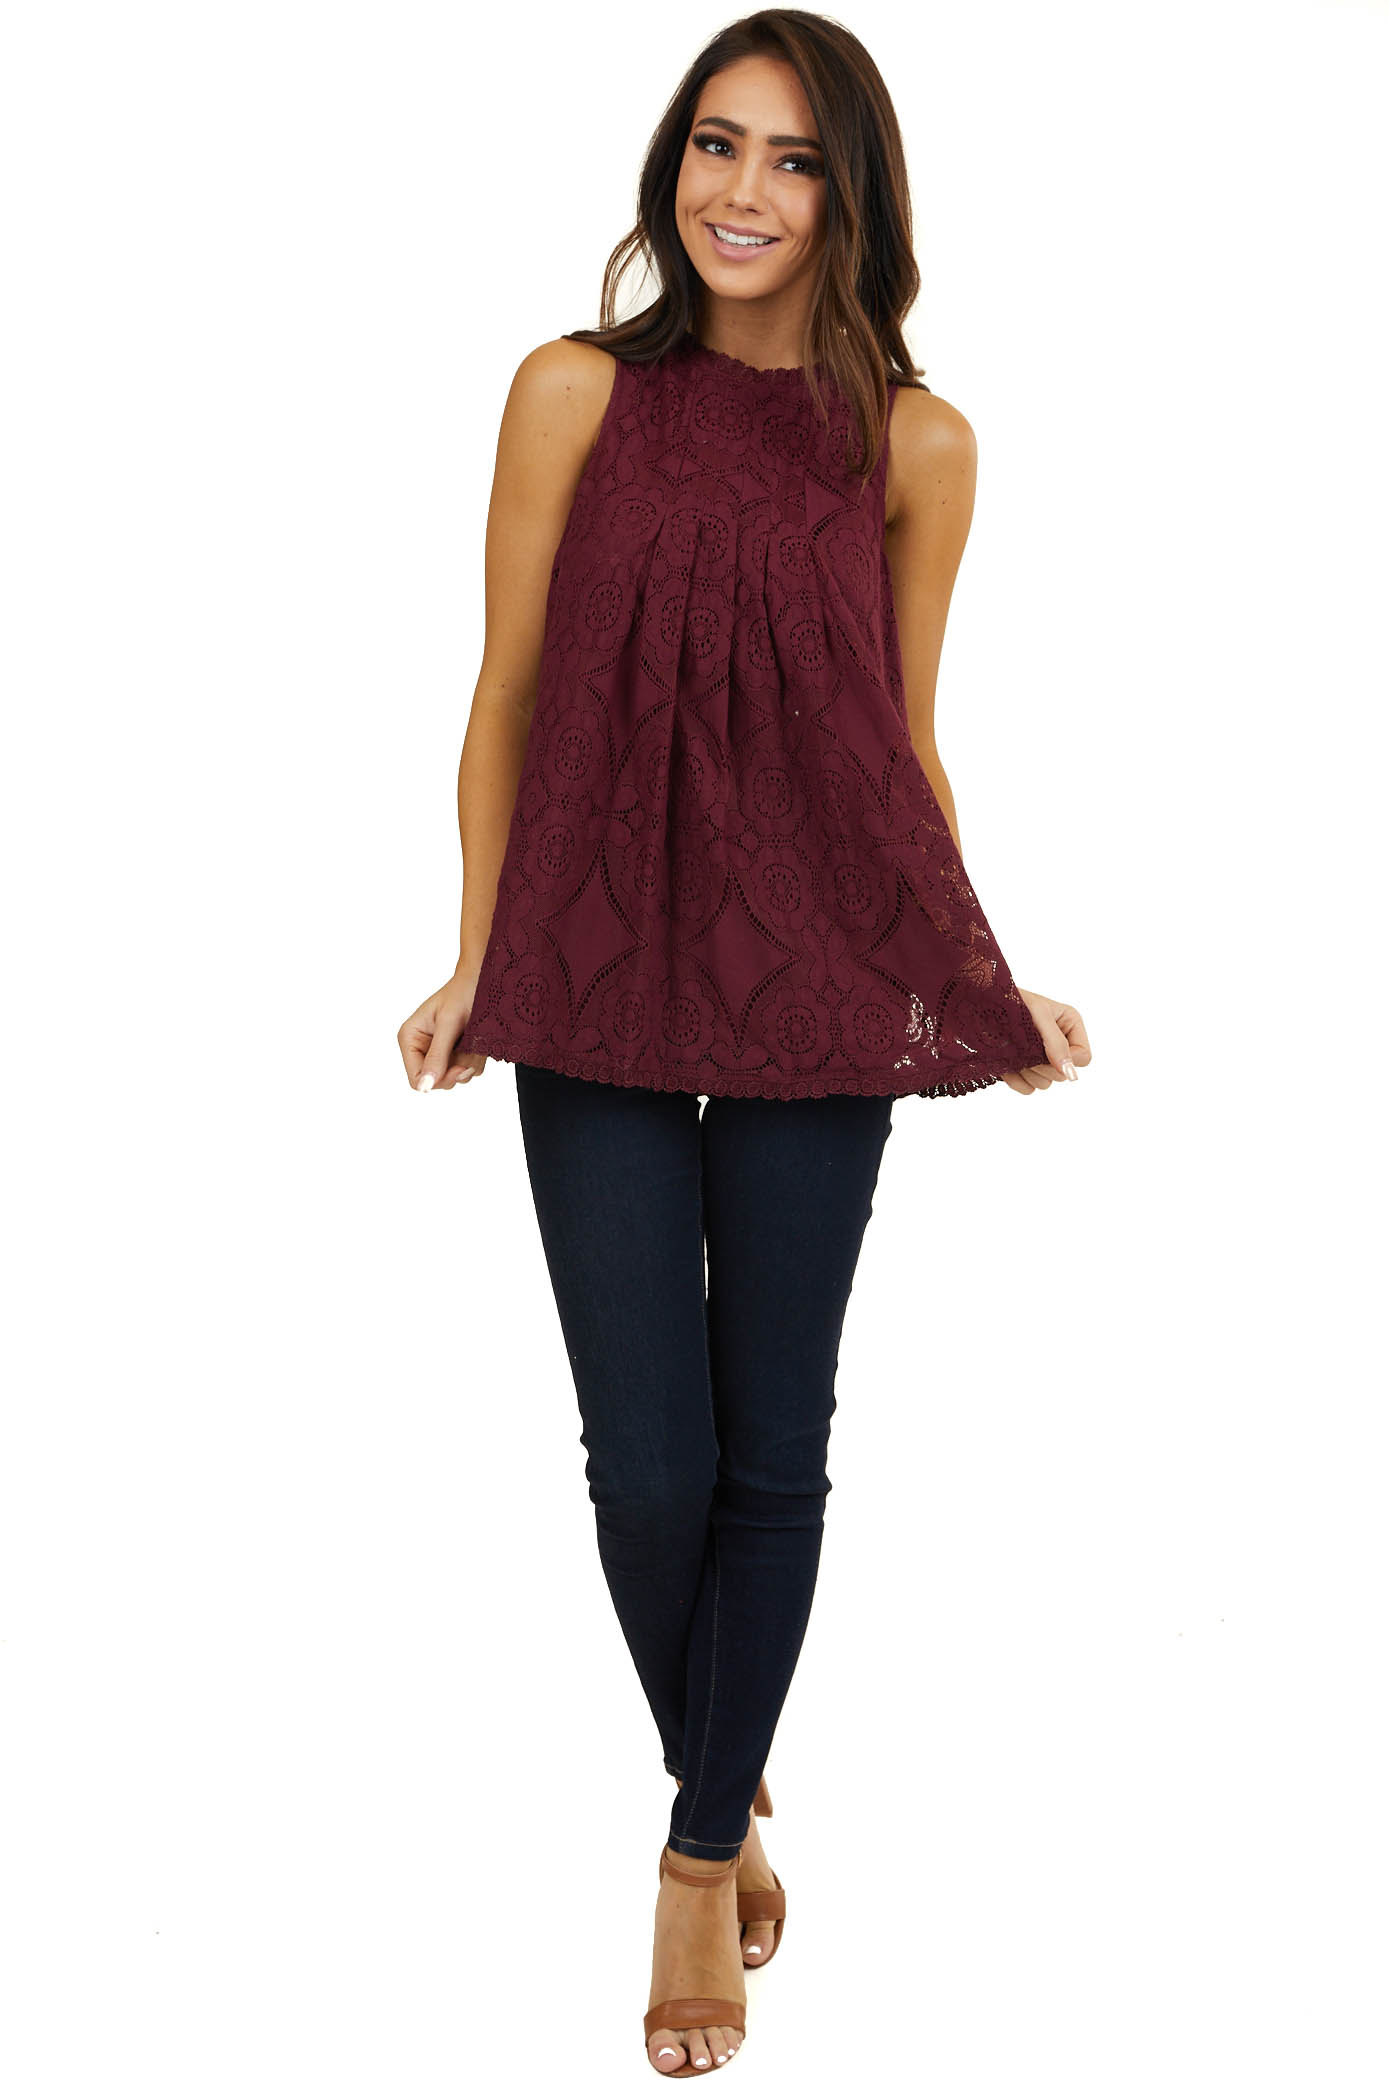 Plum Floral Lace Sleeveless Woven Top with Silky Lining